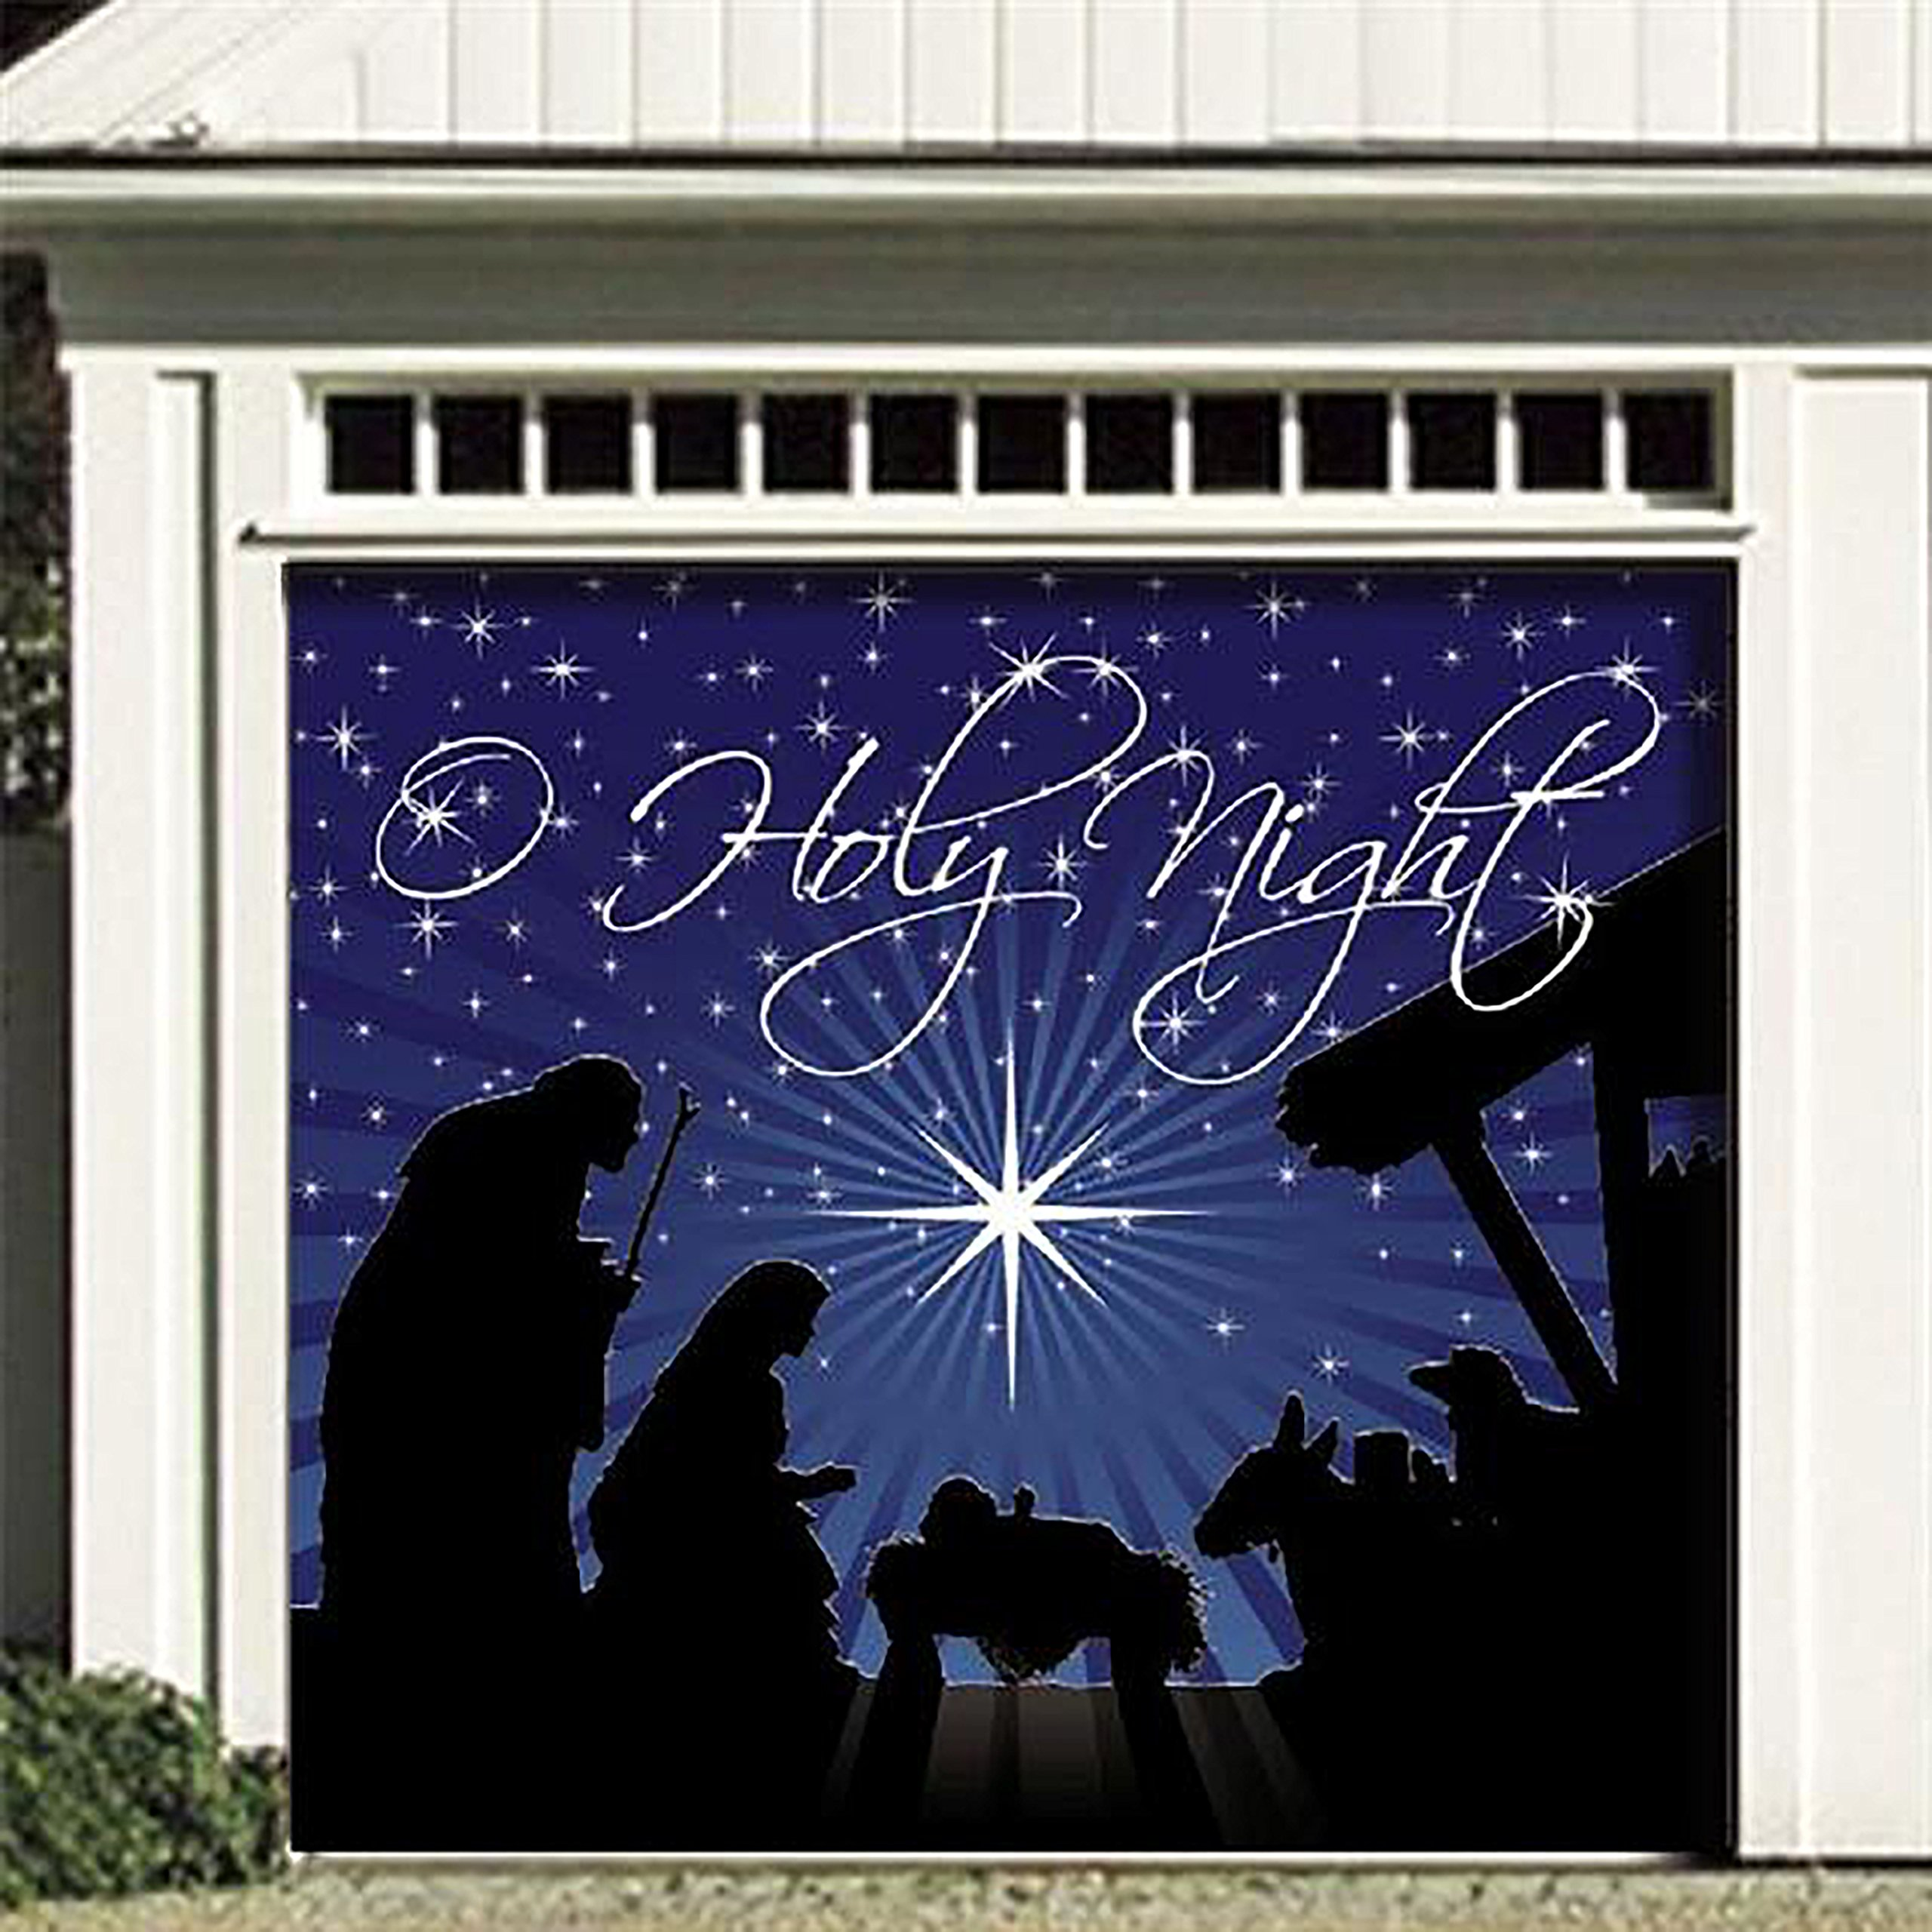 Victory Corps Outdoor Christmas Holiday Garage Door Banner Cover Mural Décoration - O'Holy Night Holiday Garage Door Banner Décor Sign 7'x8'